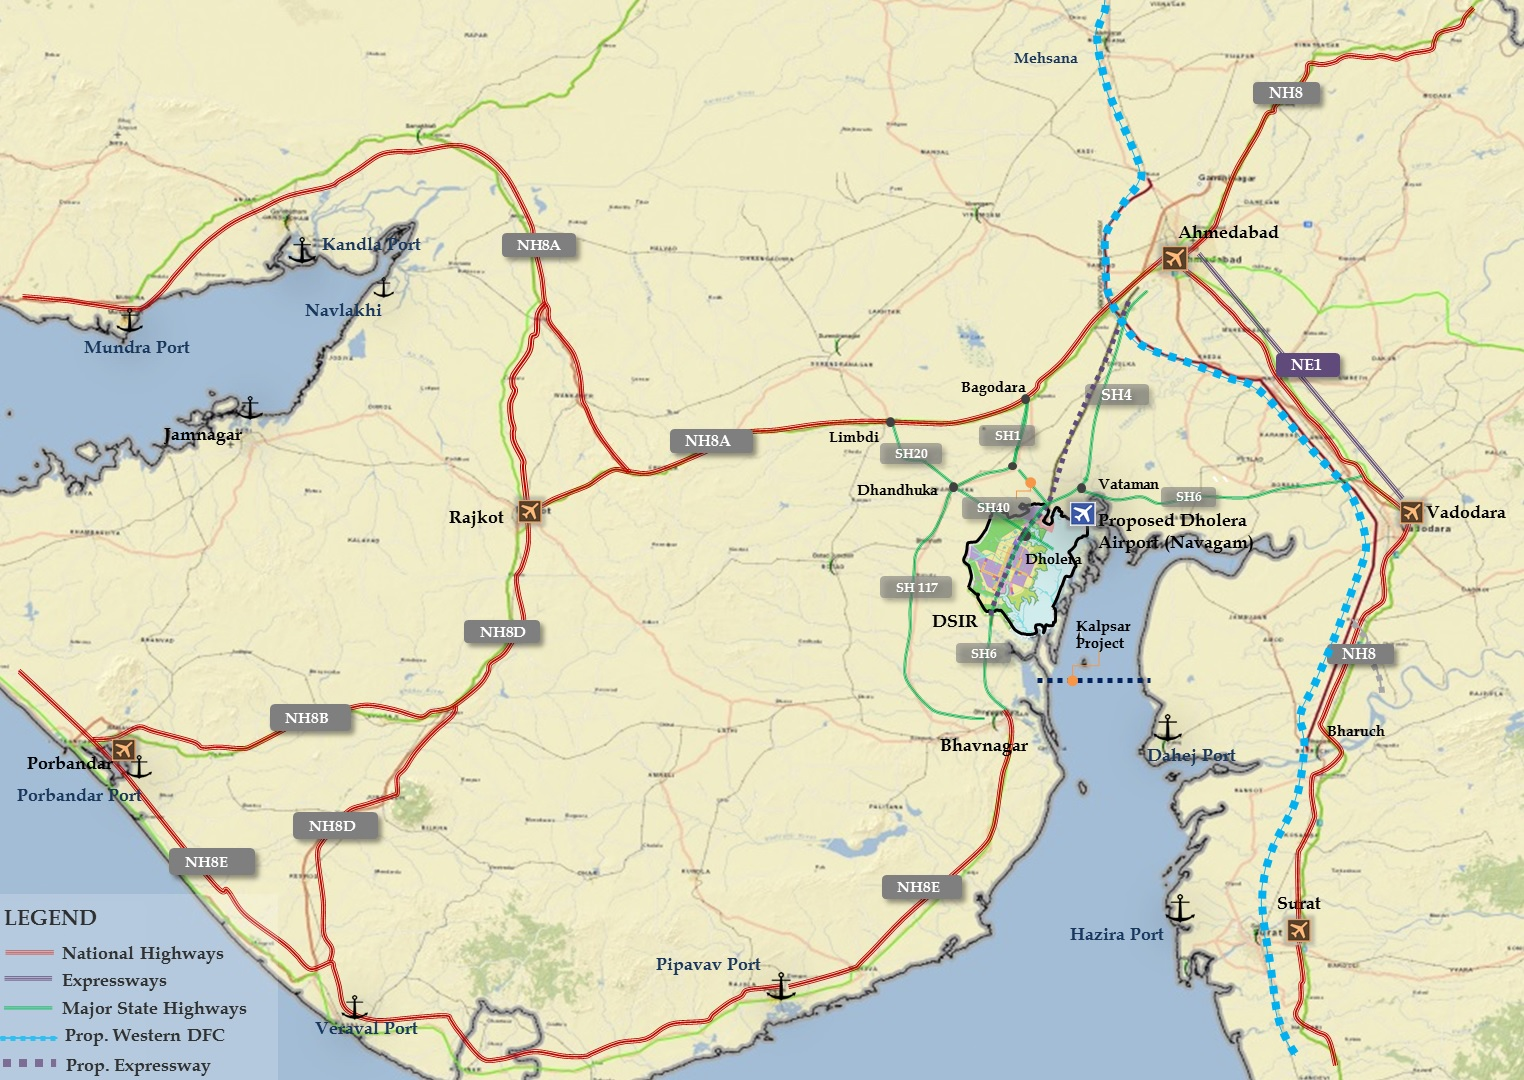 Road and Air Connectivity Map for Dholera